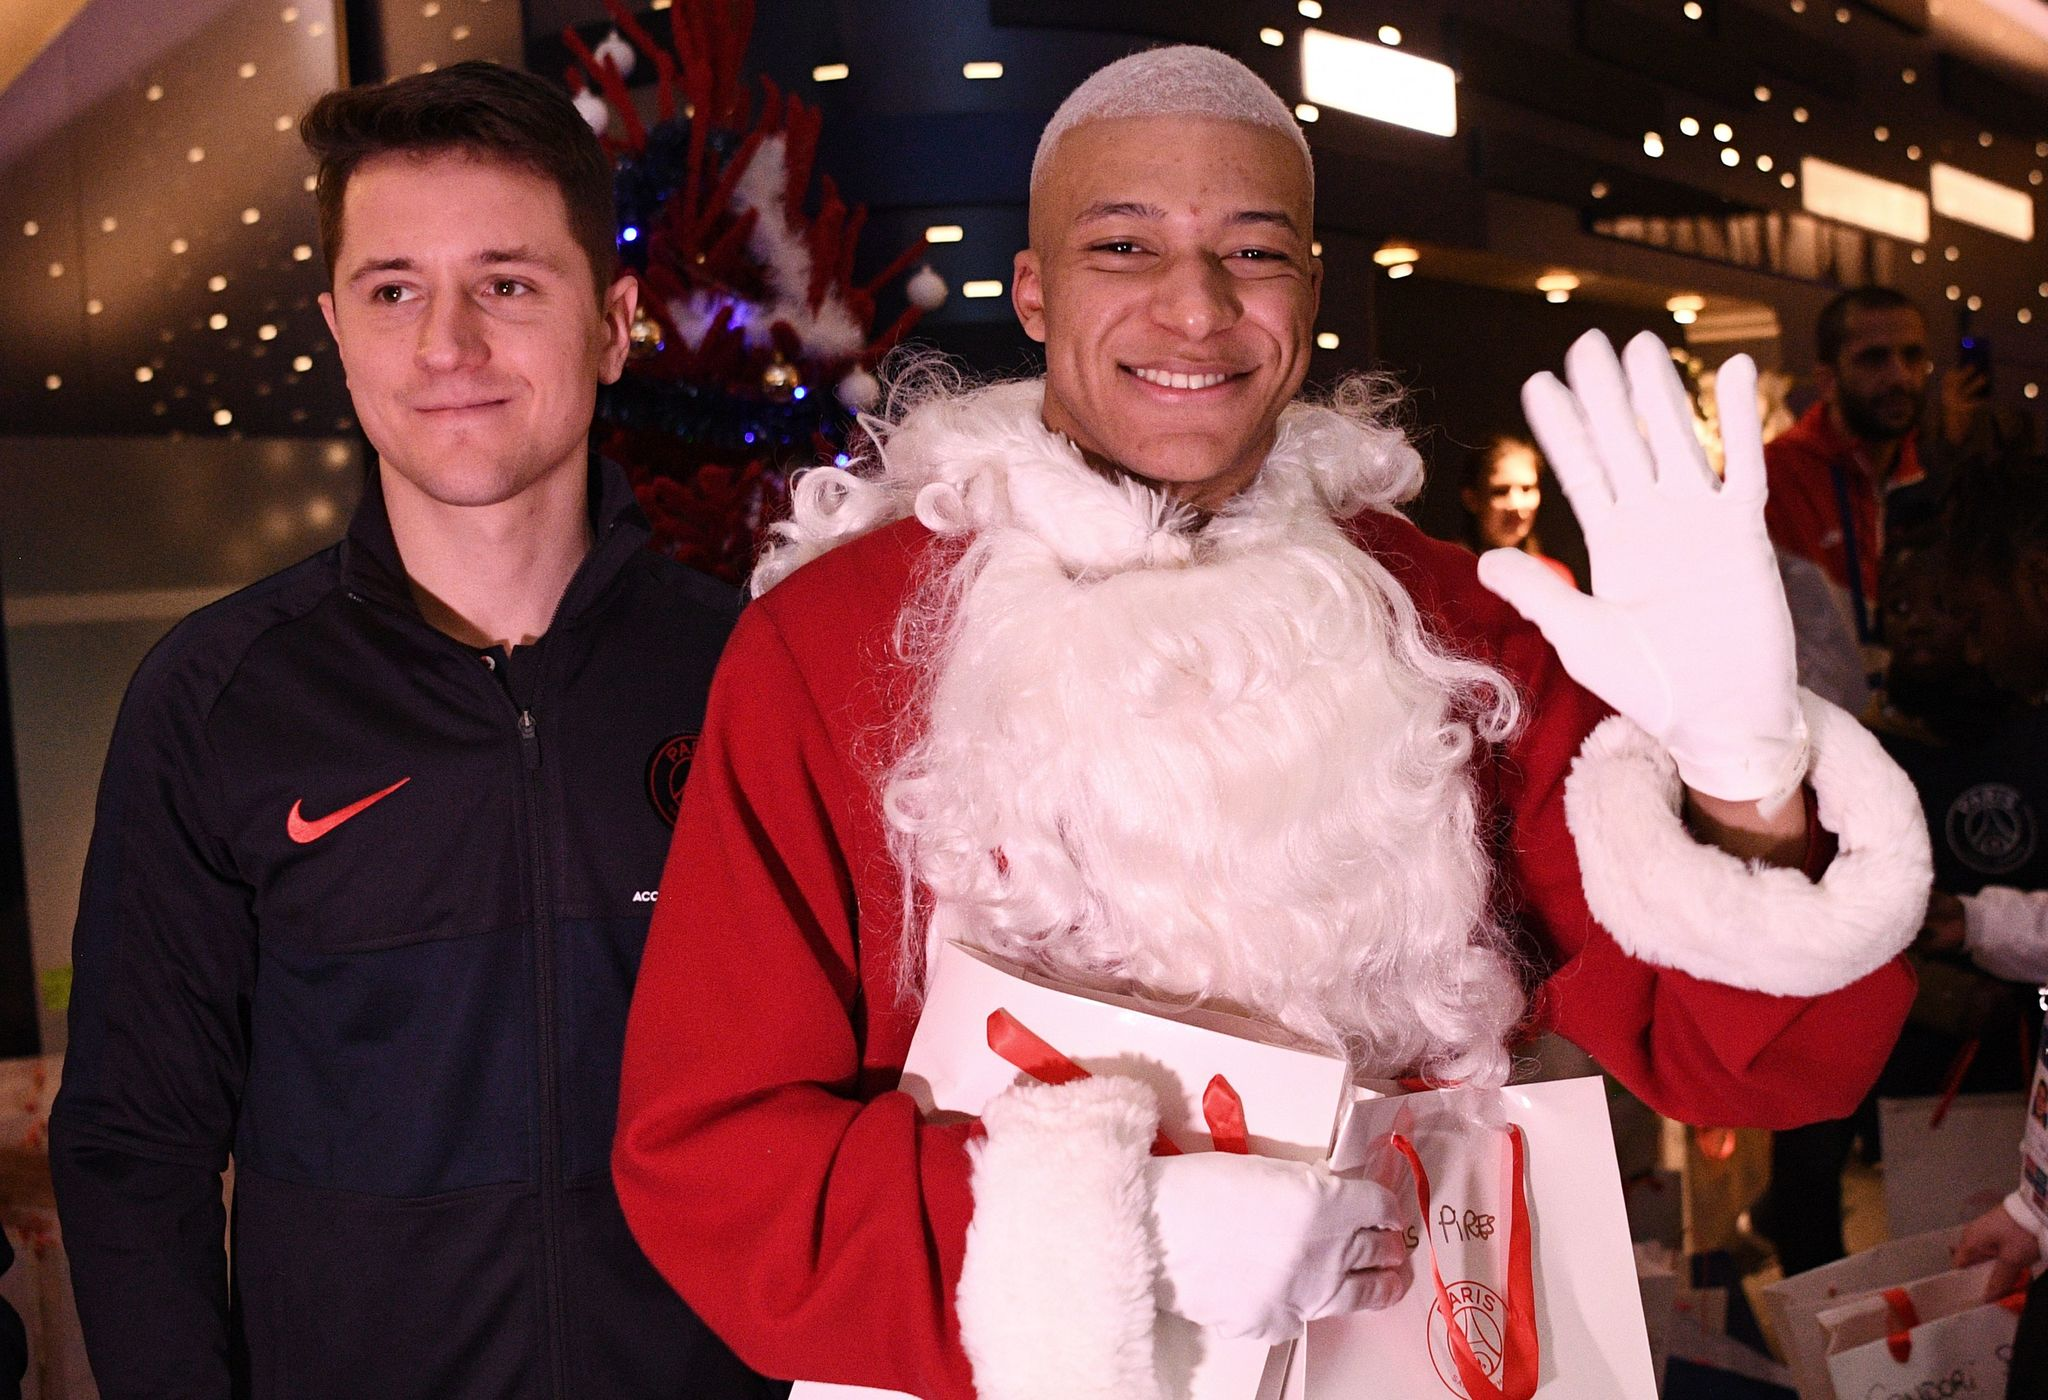 TOPSHOT - Paris Saint-Germains Spanish midfielder Ander Herrera (L) and Paris Saint-Germains French forward Kylian MBappe dressed as Santa Claus pose for a picture as they give gifts to children from the Paris Saint-Germains foundation after the French Ligue 1 football match between Paris Saint-Germain (<HIT>PSG</HIT>) and Amiens SC (ASC) at the Parc des Princes stadium in Paris on December 21, 2019. (Photo by FRANCK FIFE / AFP)